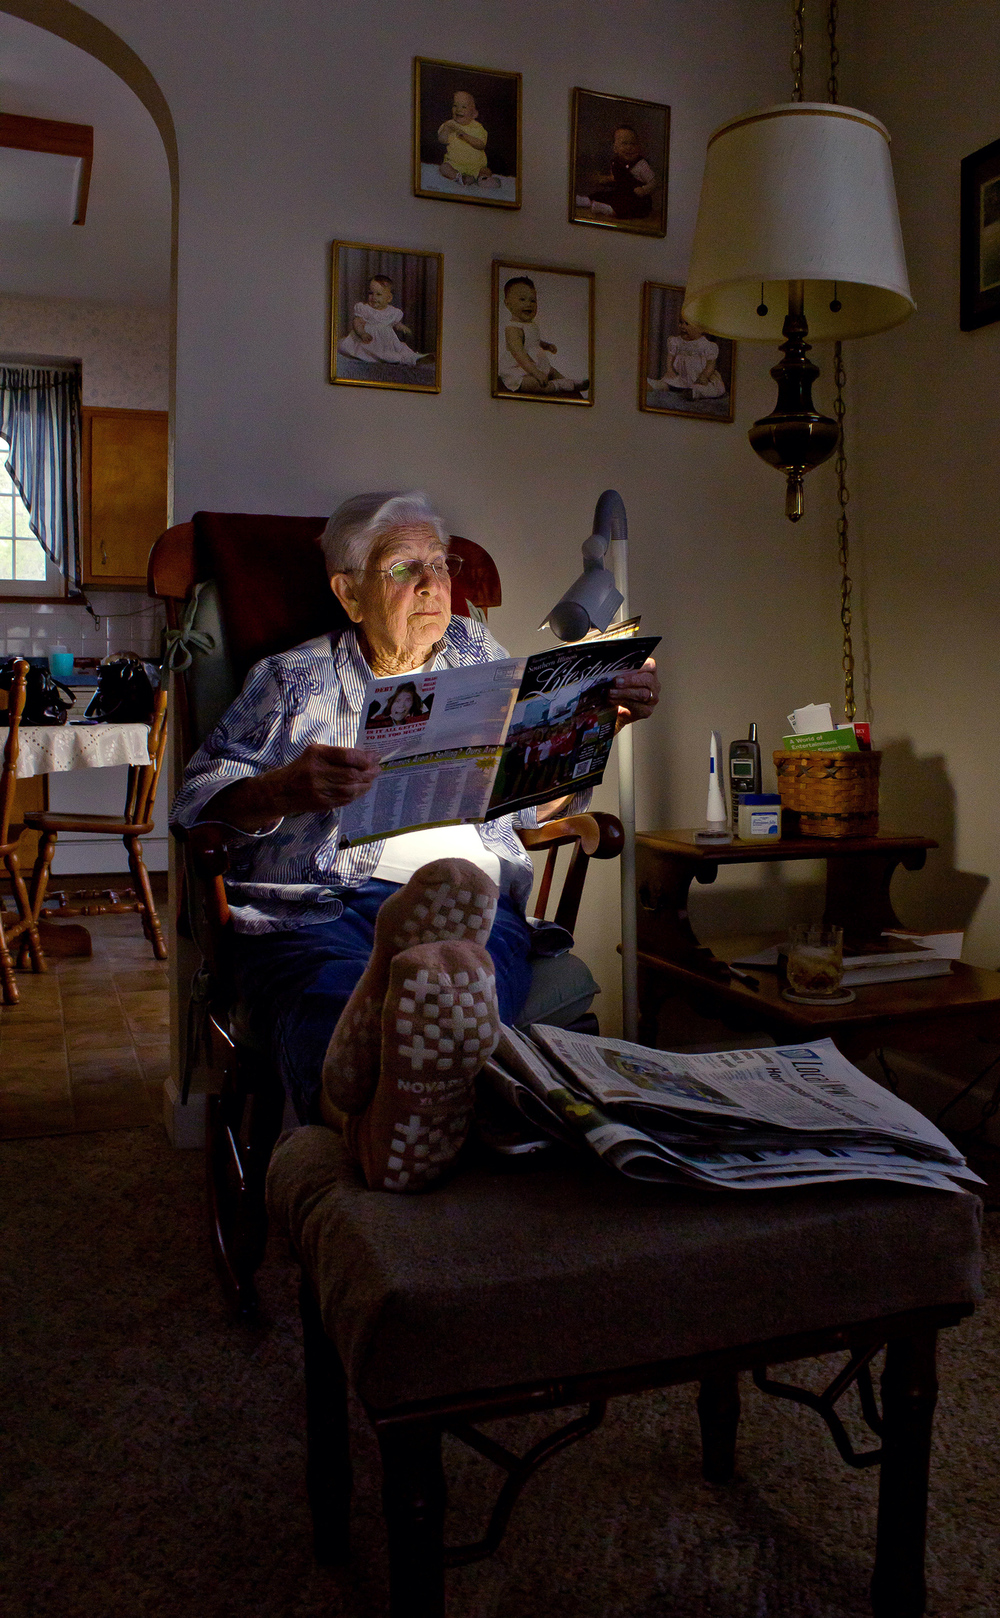 Grandma Madonna sitting in her chair Waterloo, Ill 2010. I miss seeing her waiting at the door after long five hour drives to her house in my family's van. She gave great hugs.